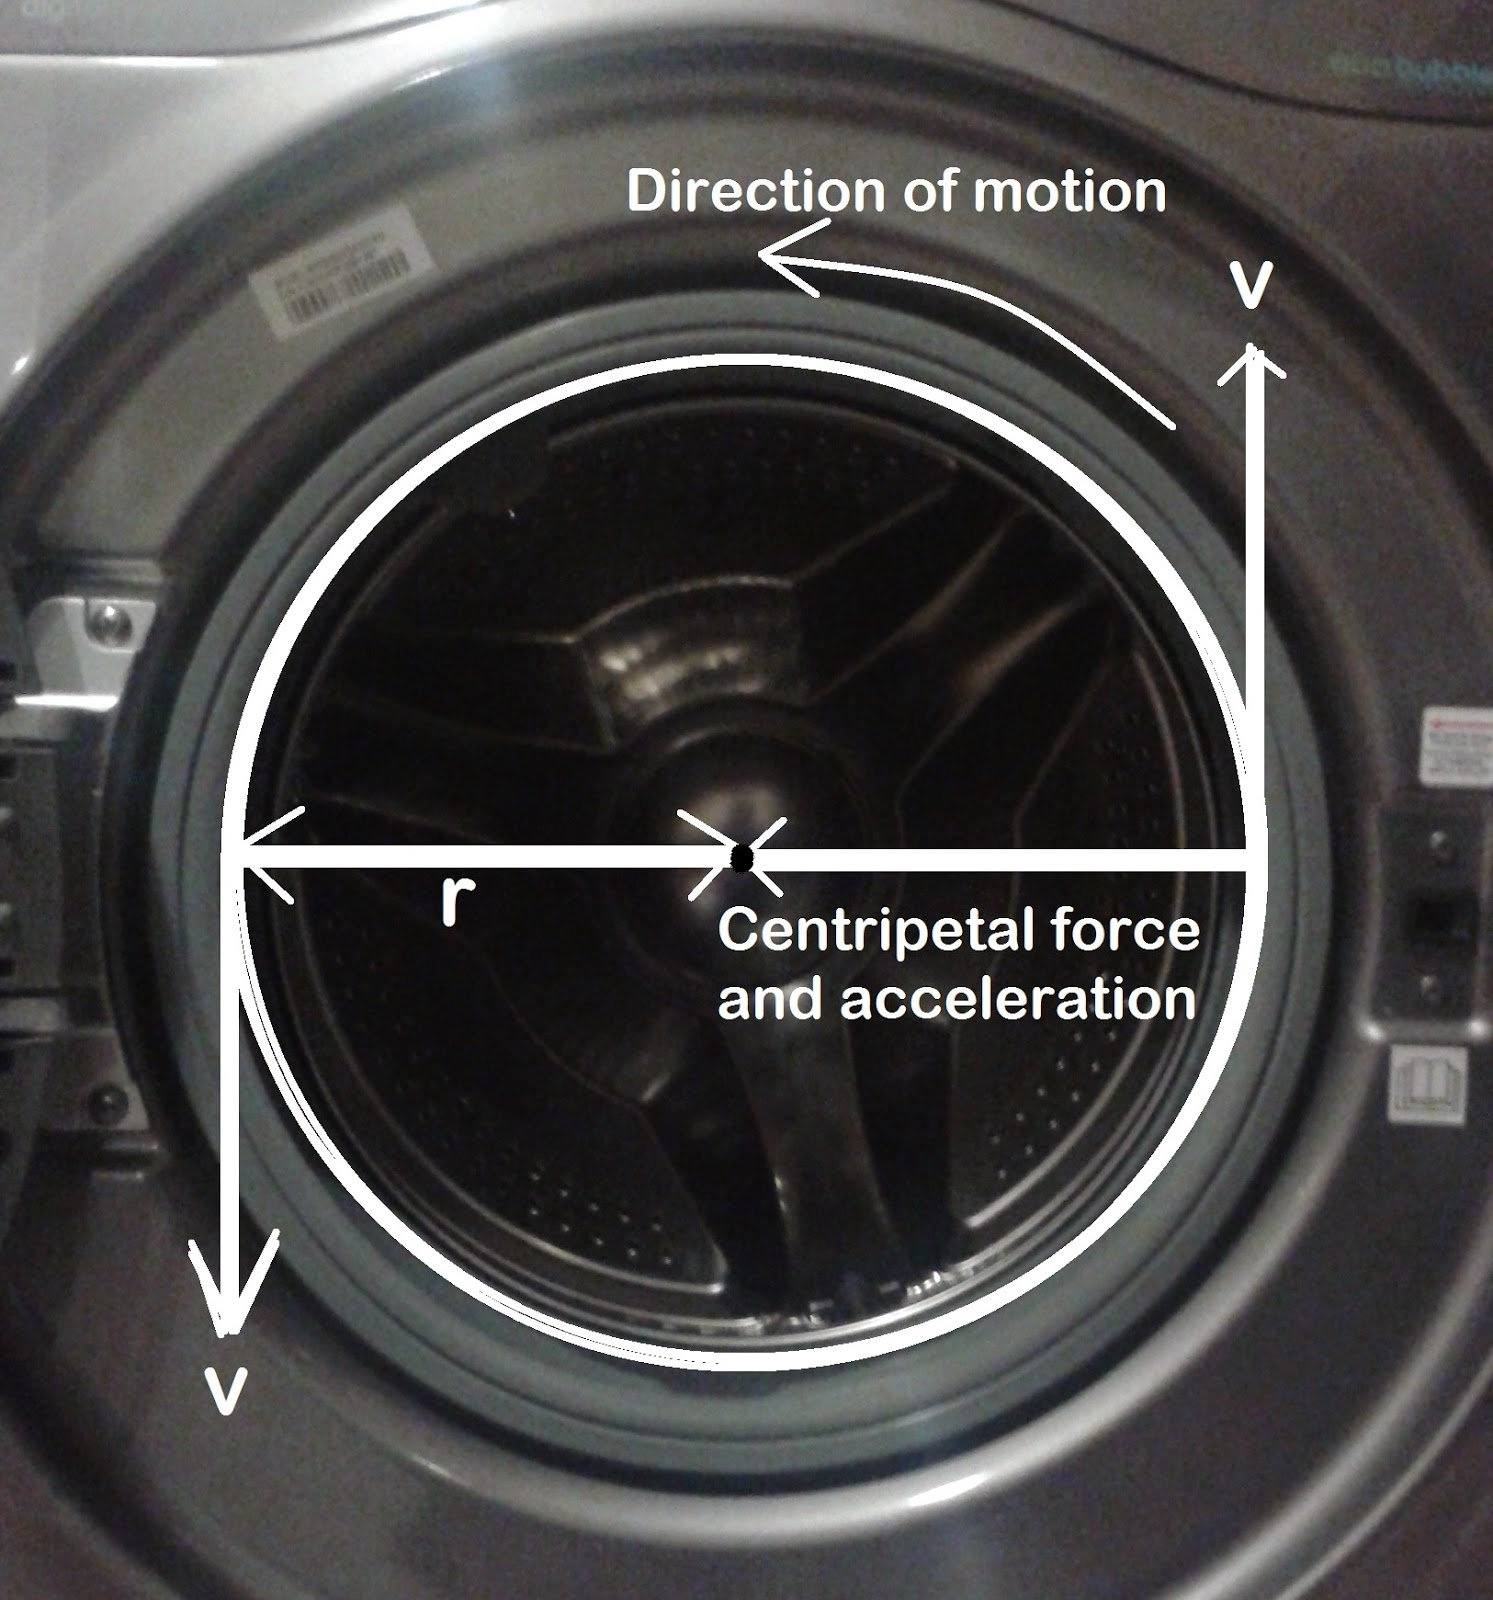 inside a washing machine the radius of the cylinder